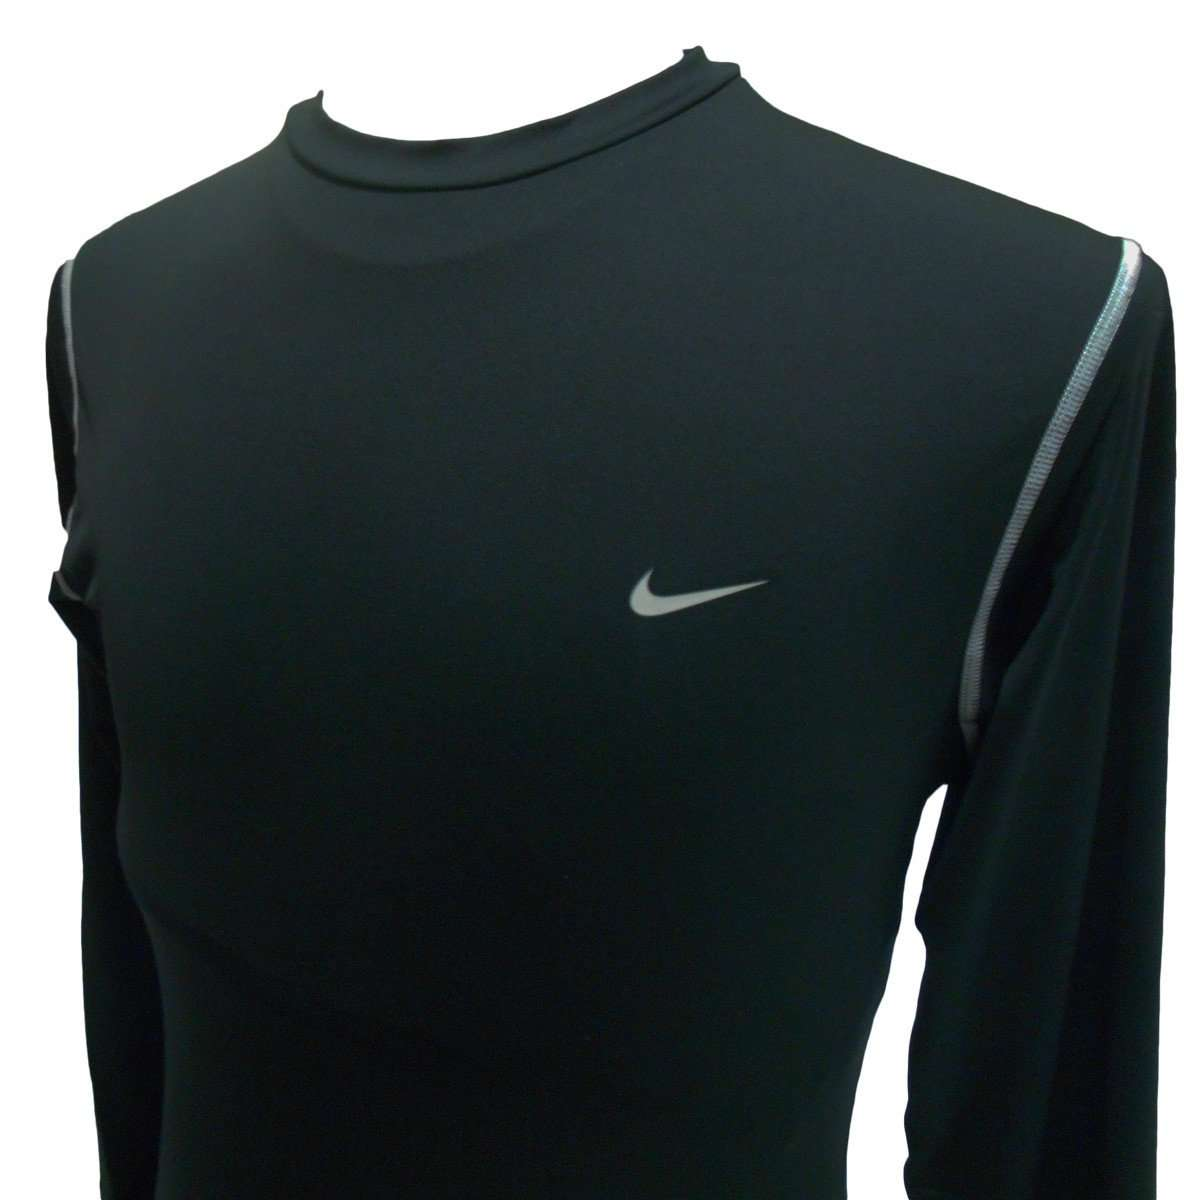 Nike Pro Dri Fit Long Sleeve Training Shirt League Outfitters Combat Base Layer Sleeves L Black